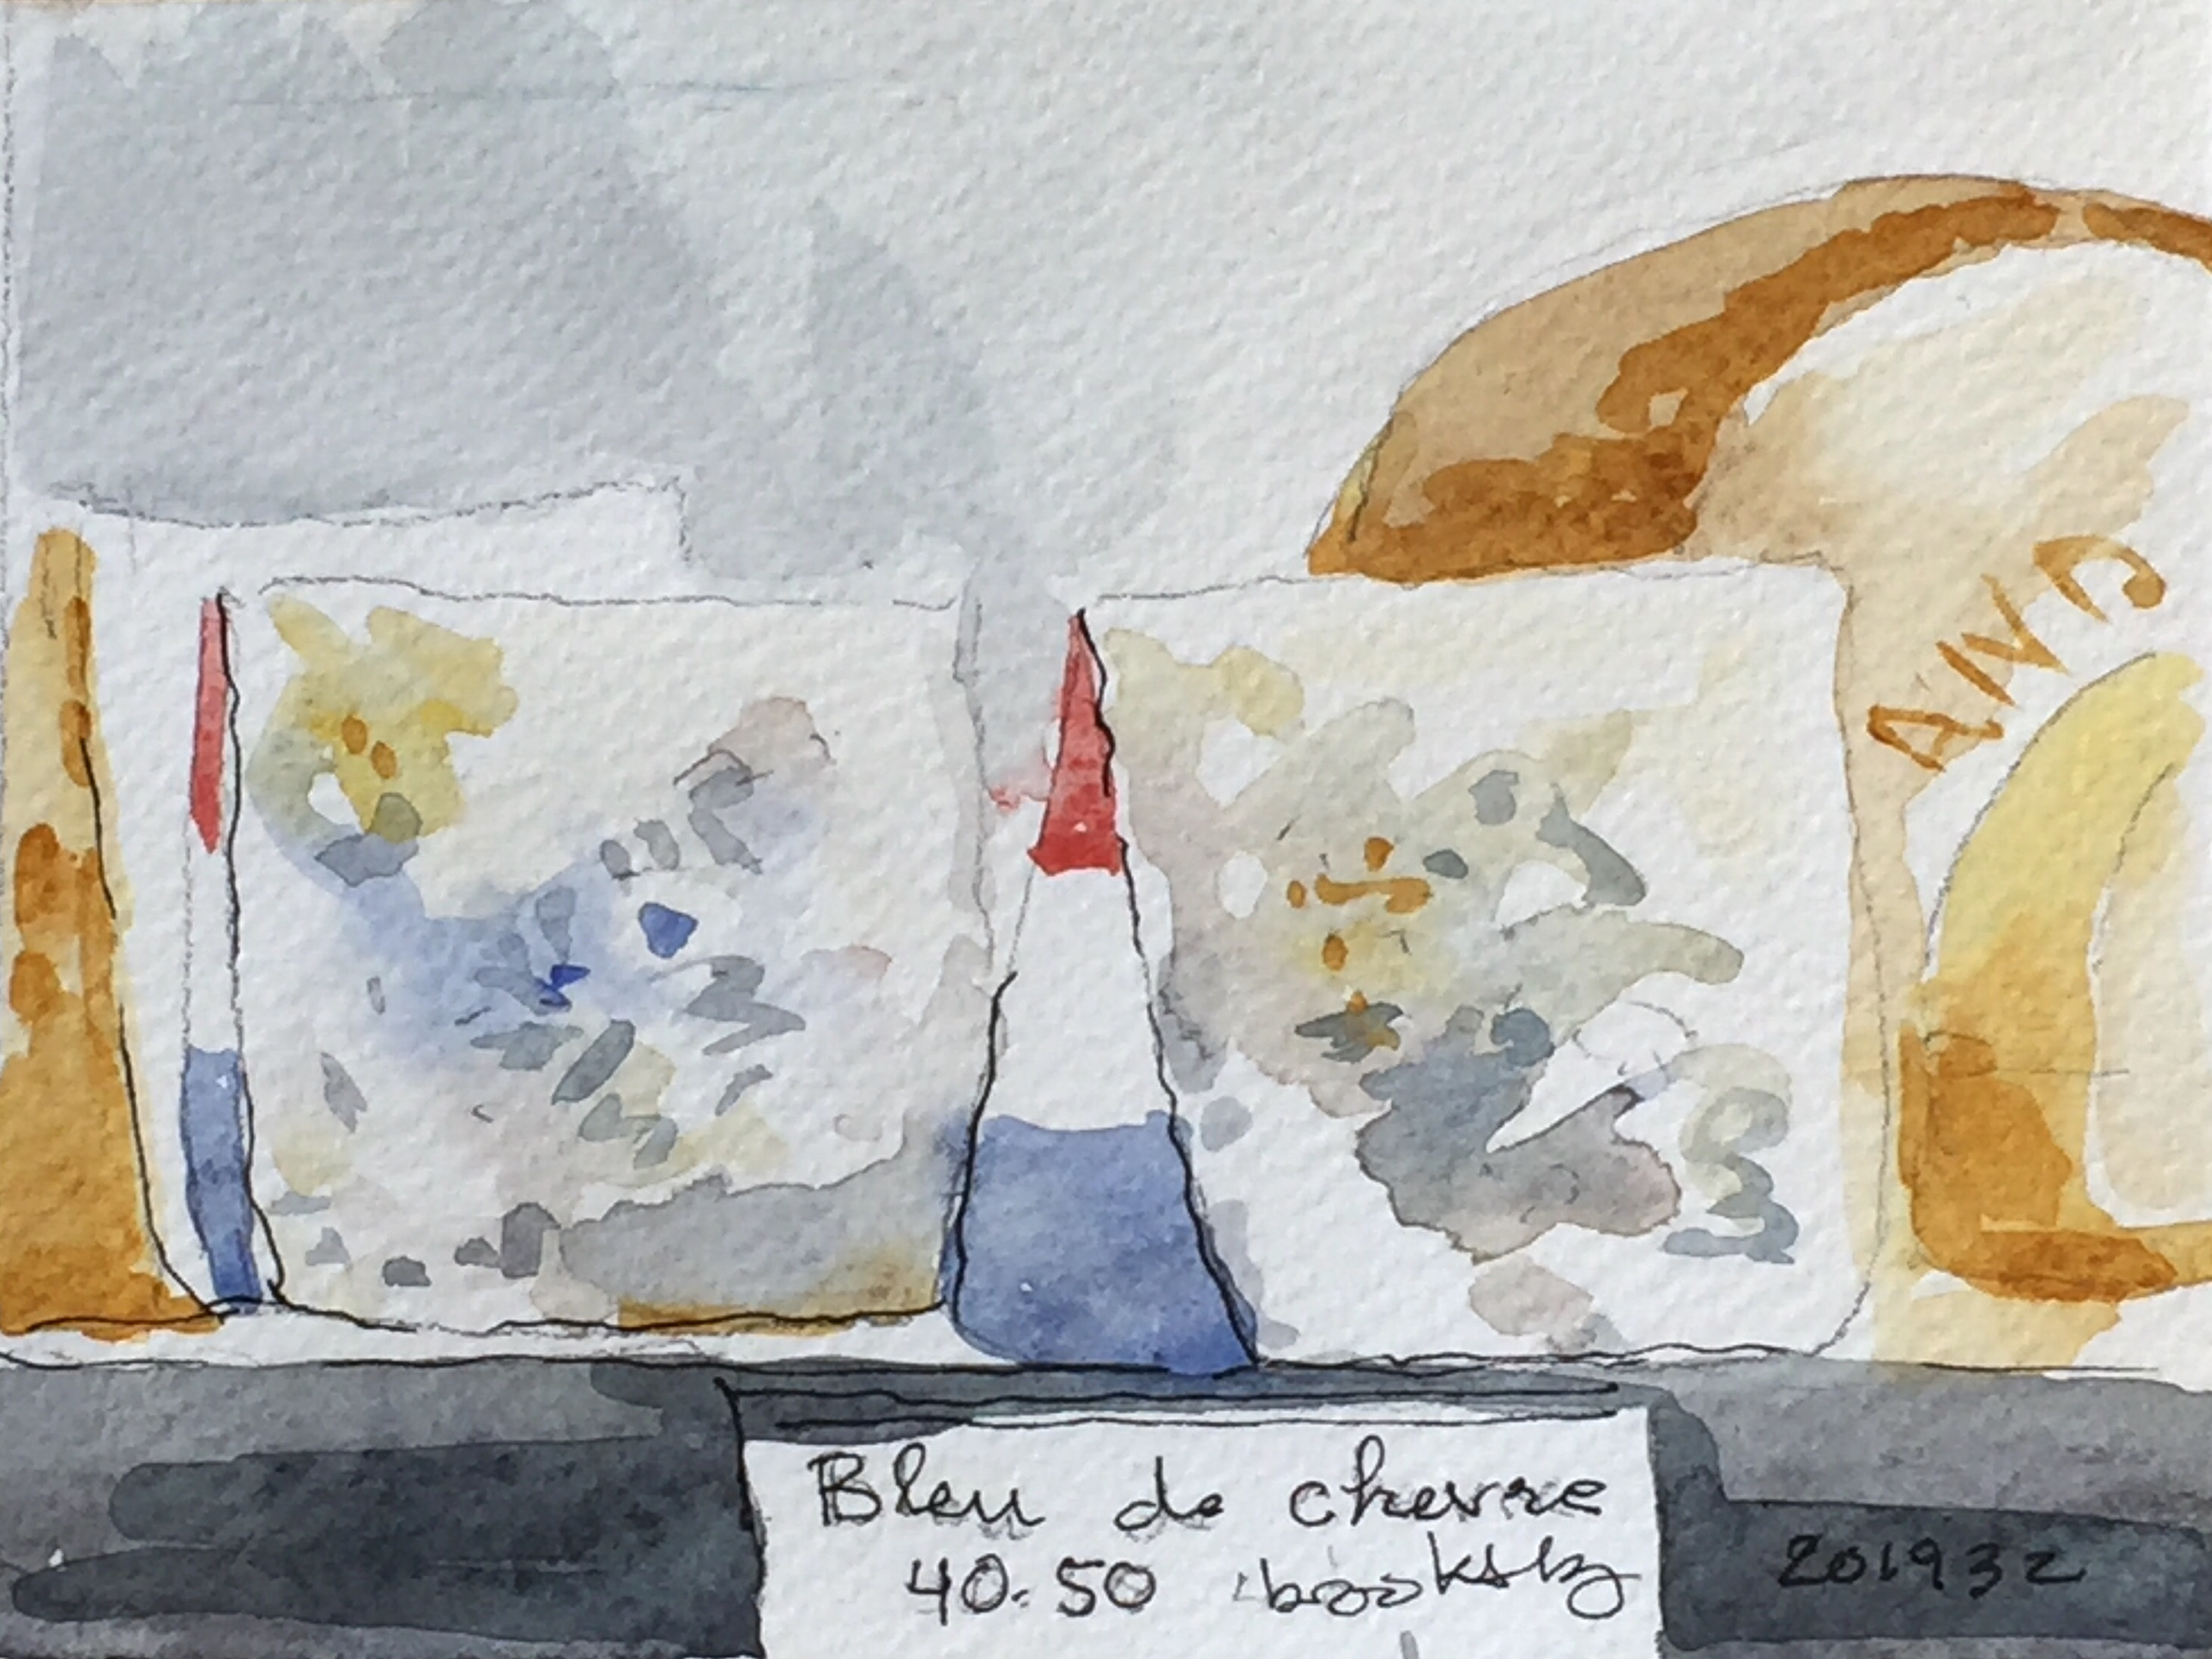 201932 Bleue de chèvre: French Cheese - postcard-sized illustration - ink and watercolor on archival paper